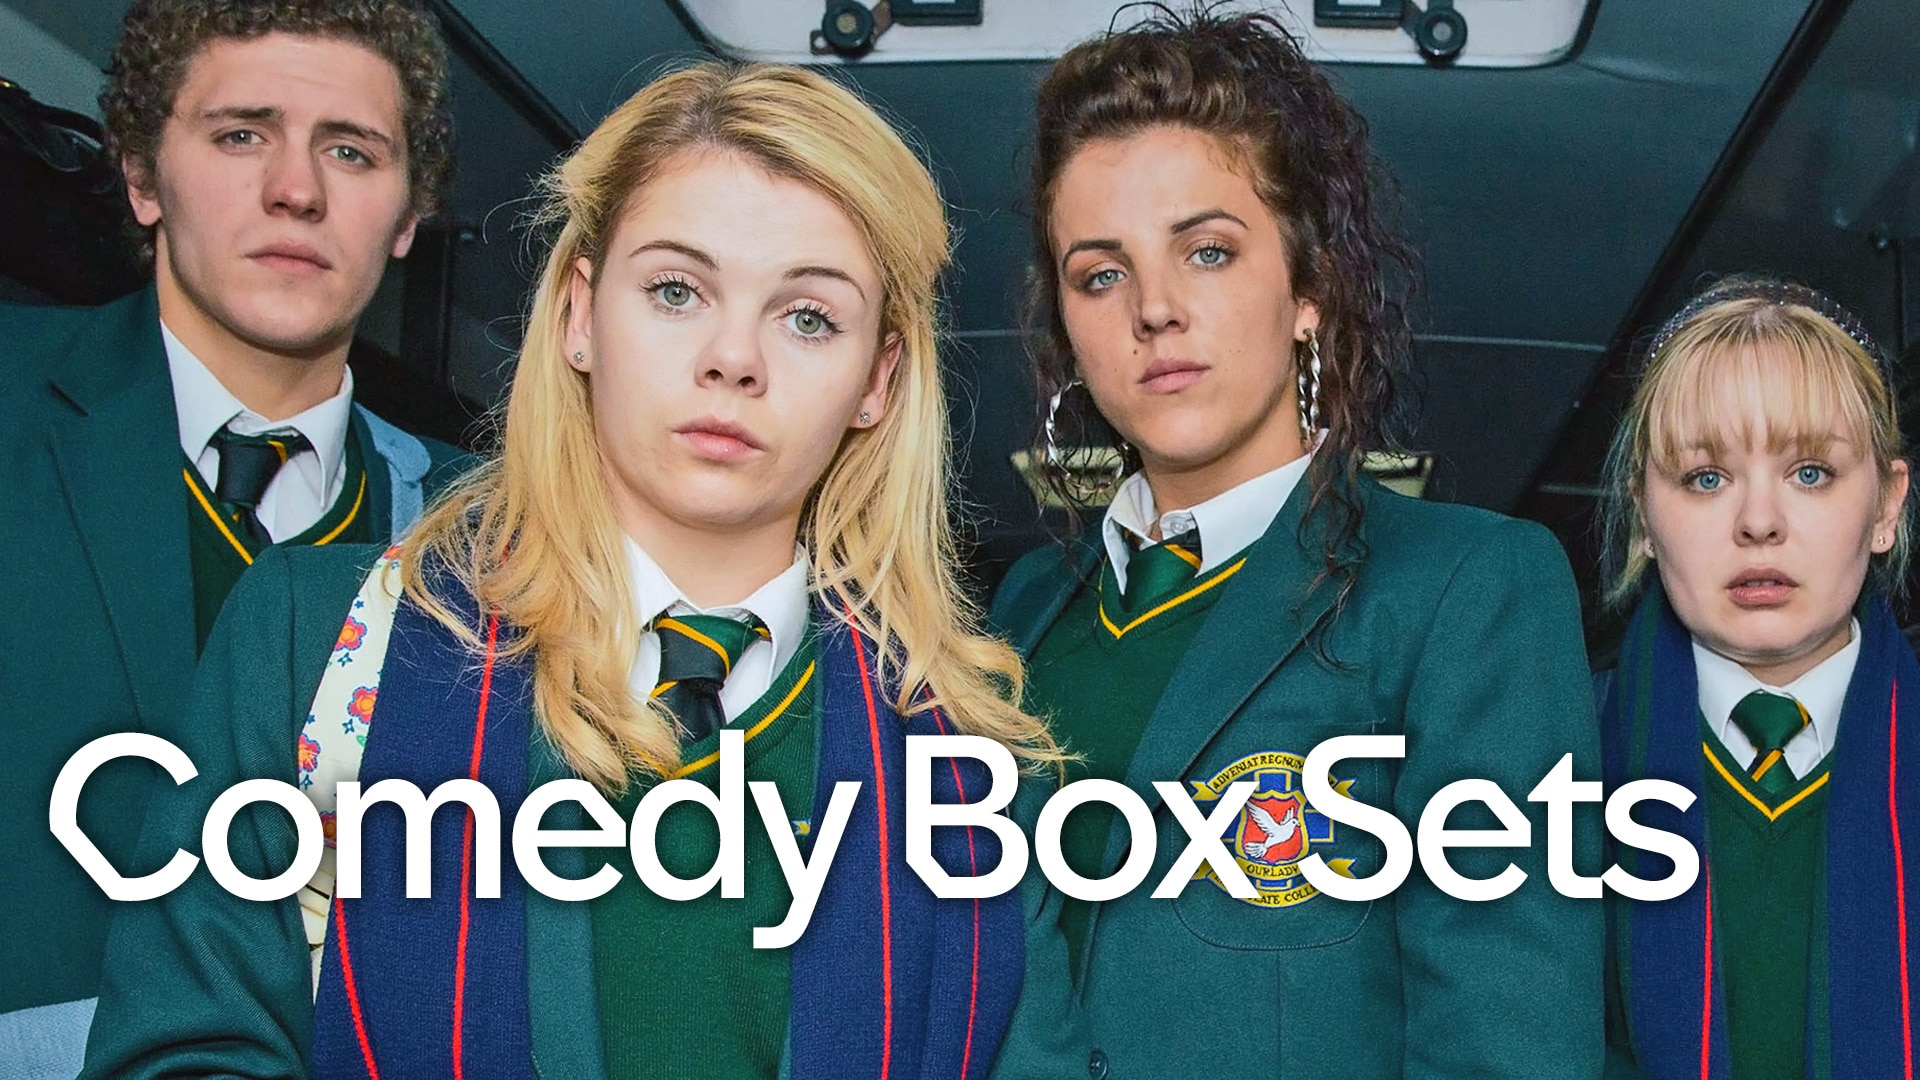 Comedy Box Sets